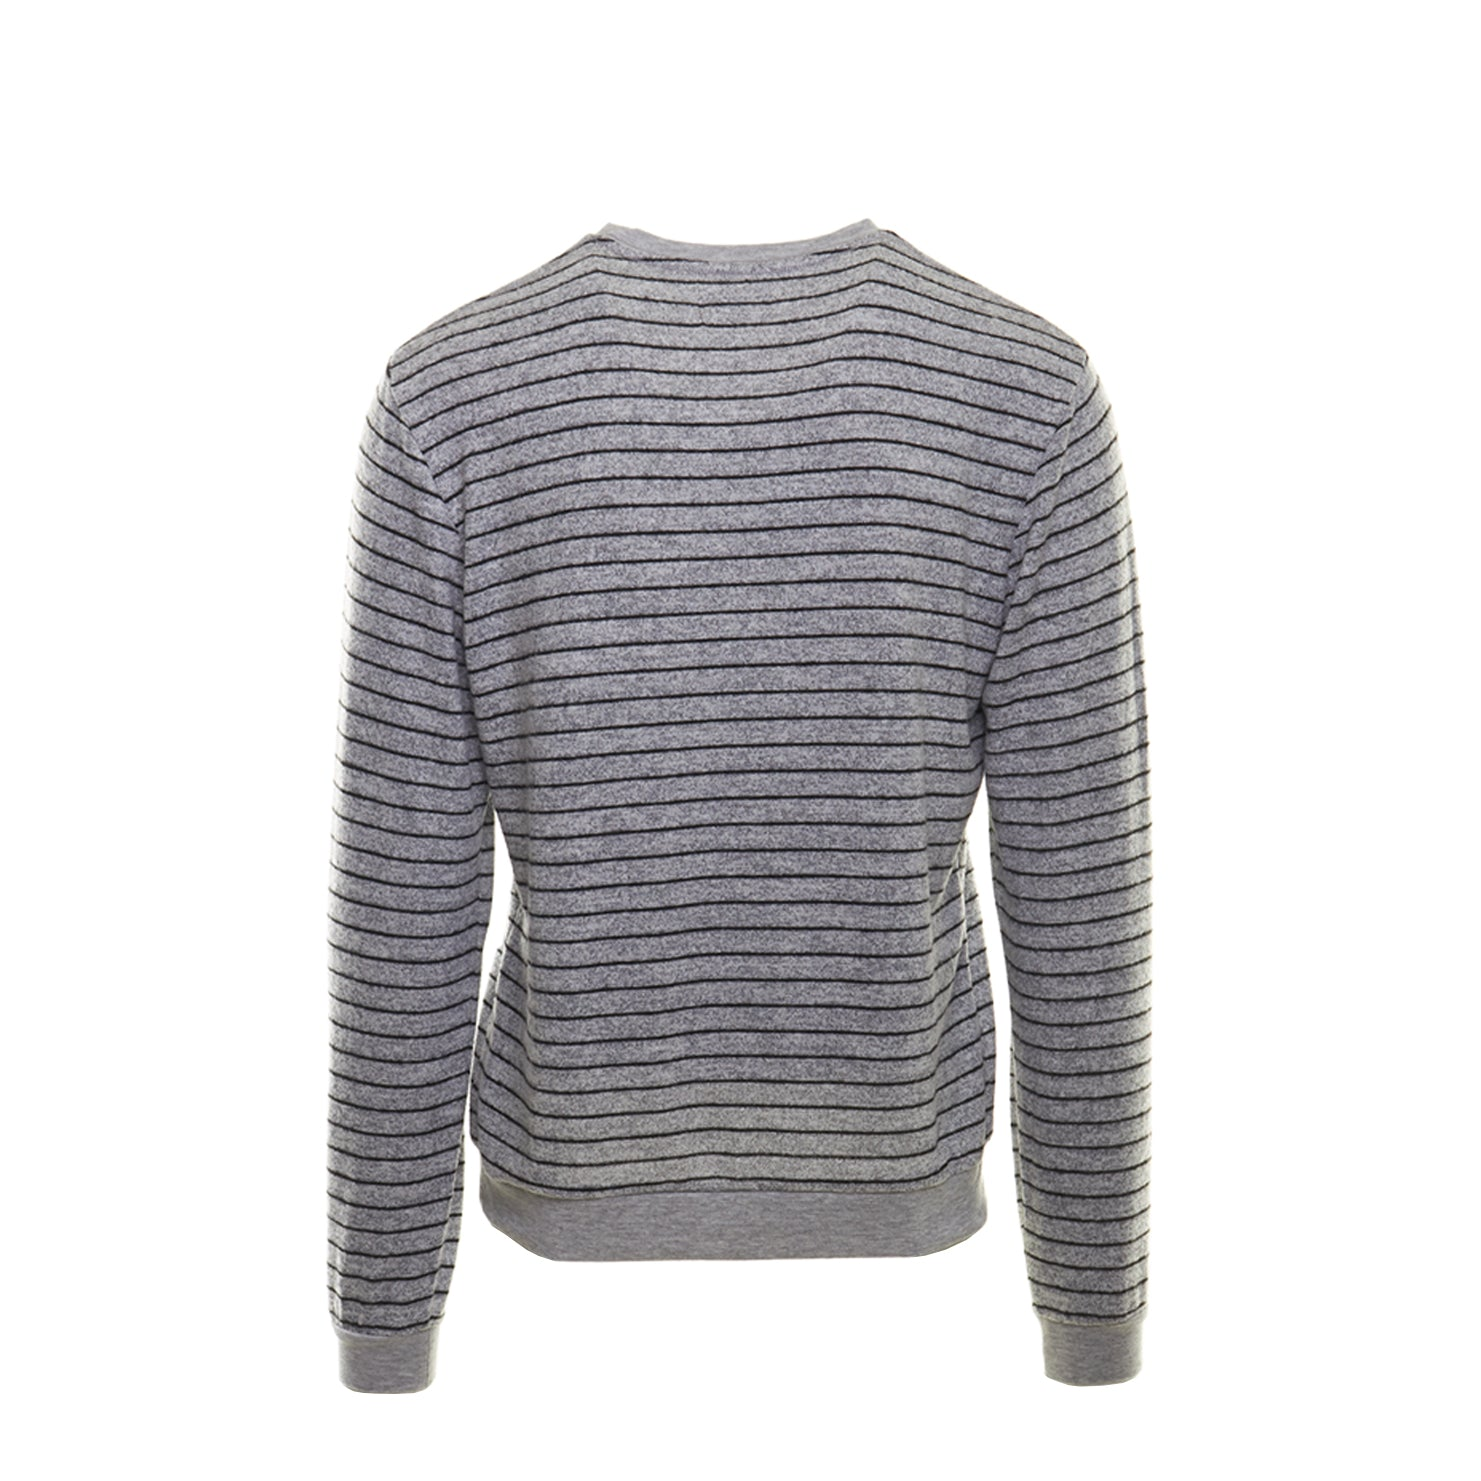 HACCI SWEATSHIRT - GREY/BLACK STRIPE